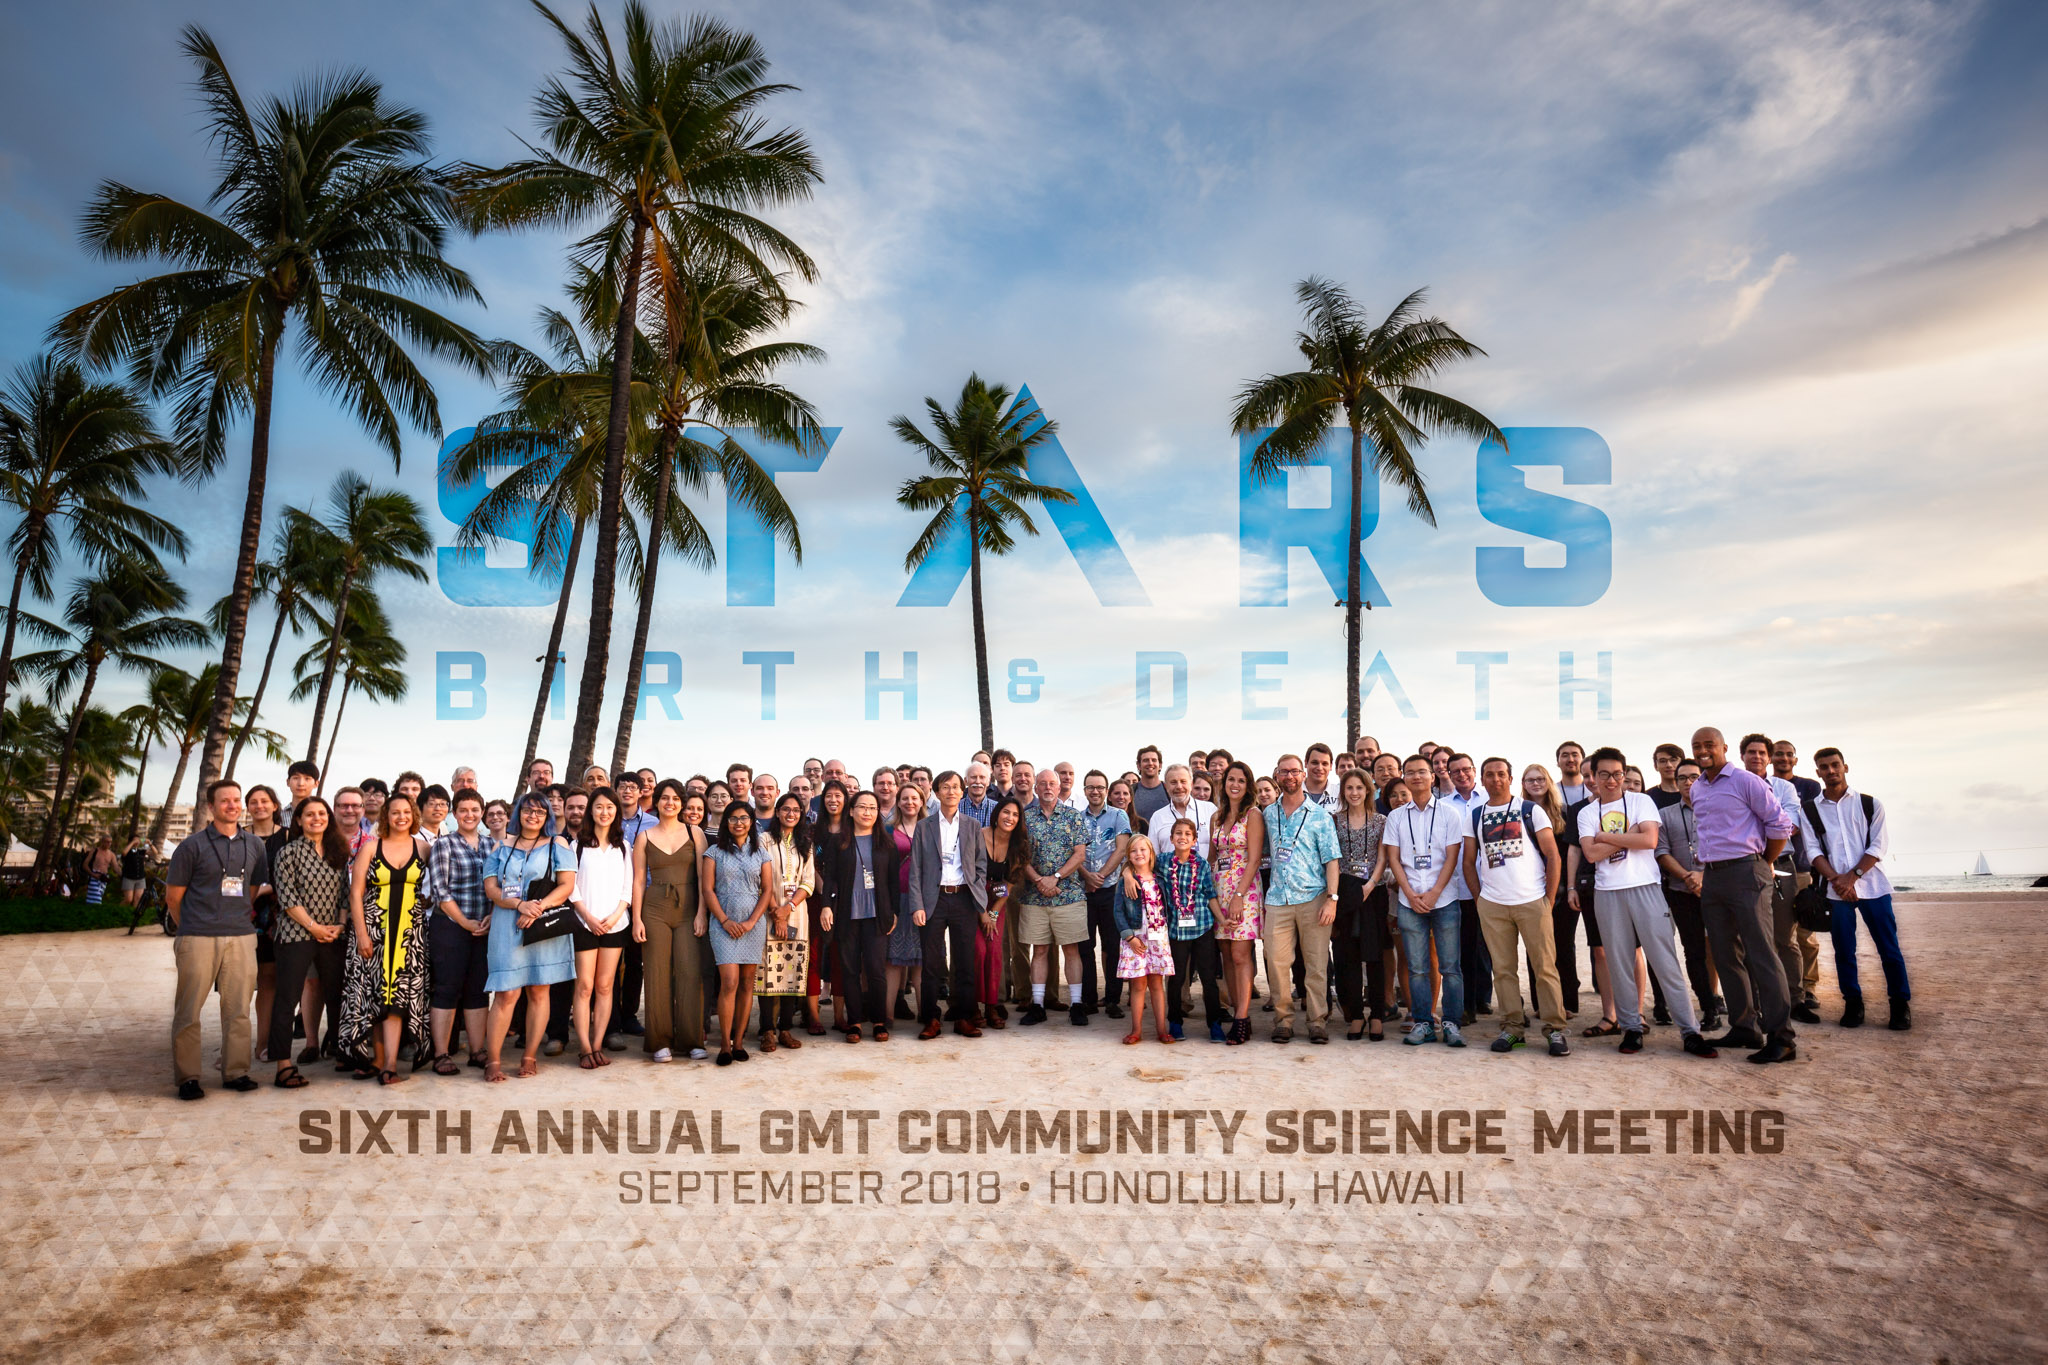 Community Science Meeting 2018 Group Photo 1.jpg